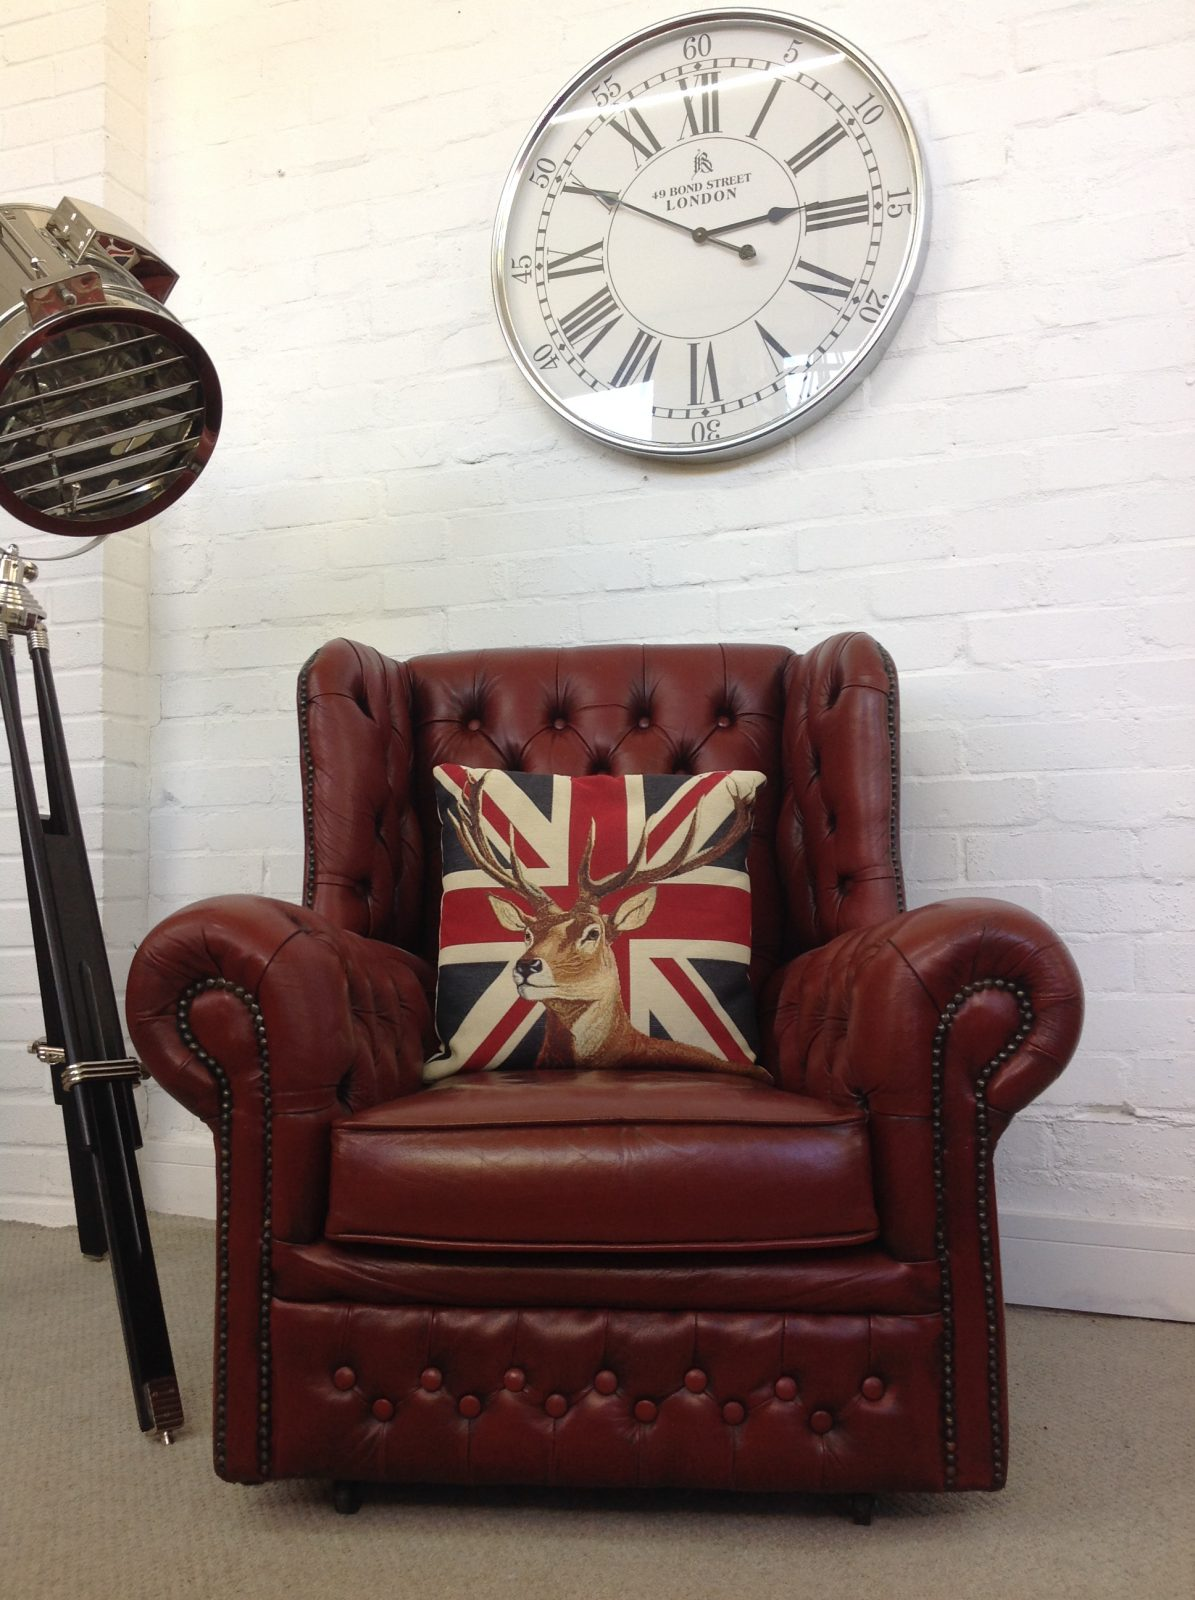 Antique Red Wingback Armchair.( Matching 3 Seater Sofa Available)